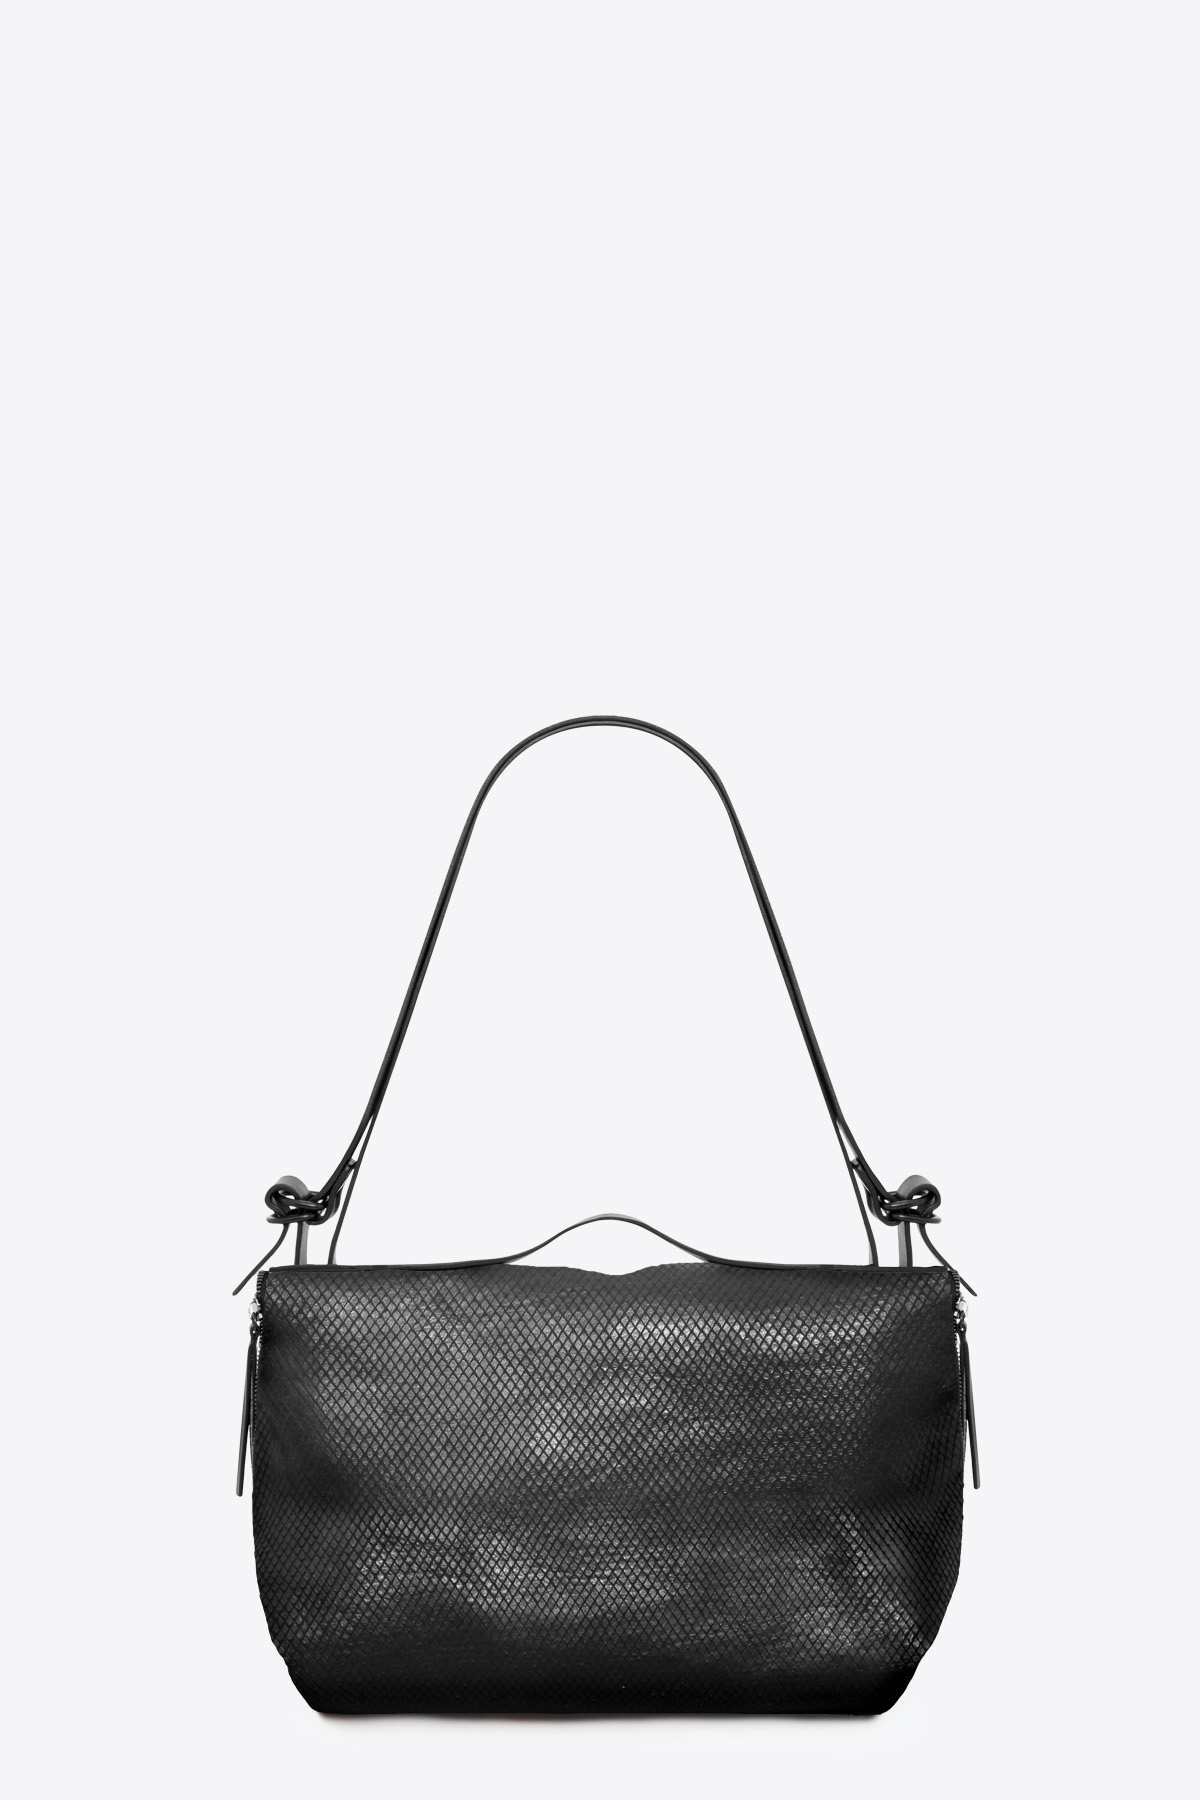 dclr008l-messenger-a23-backsnakeblack-back